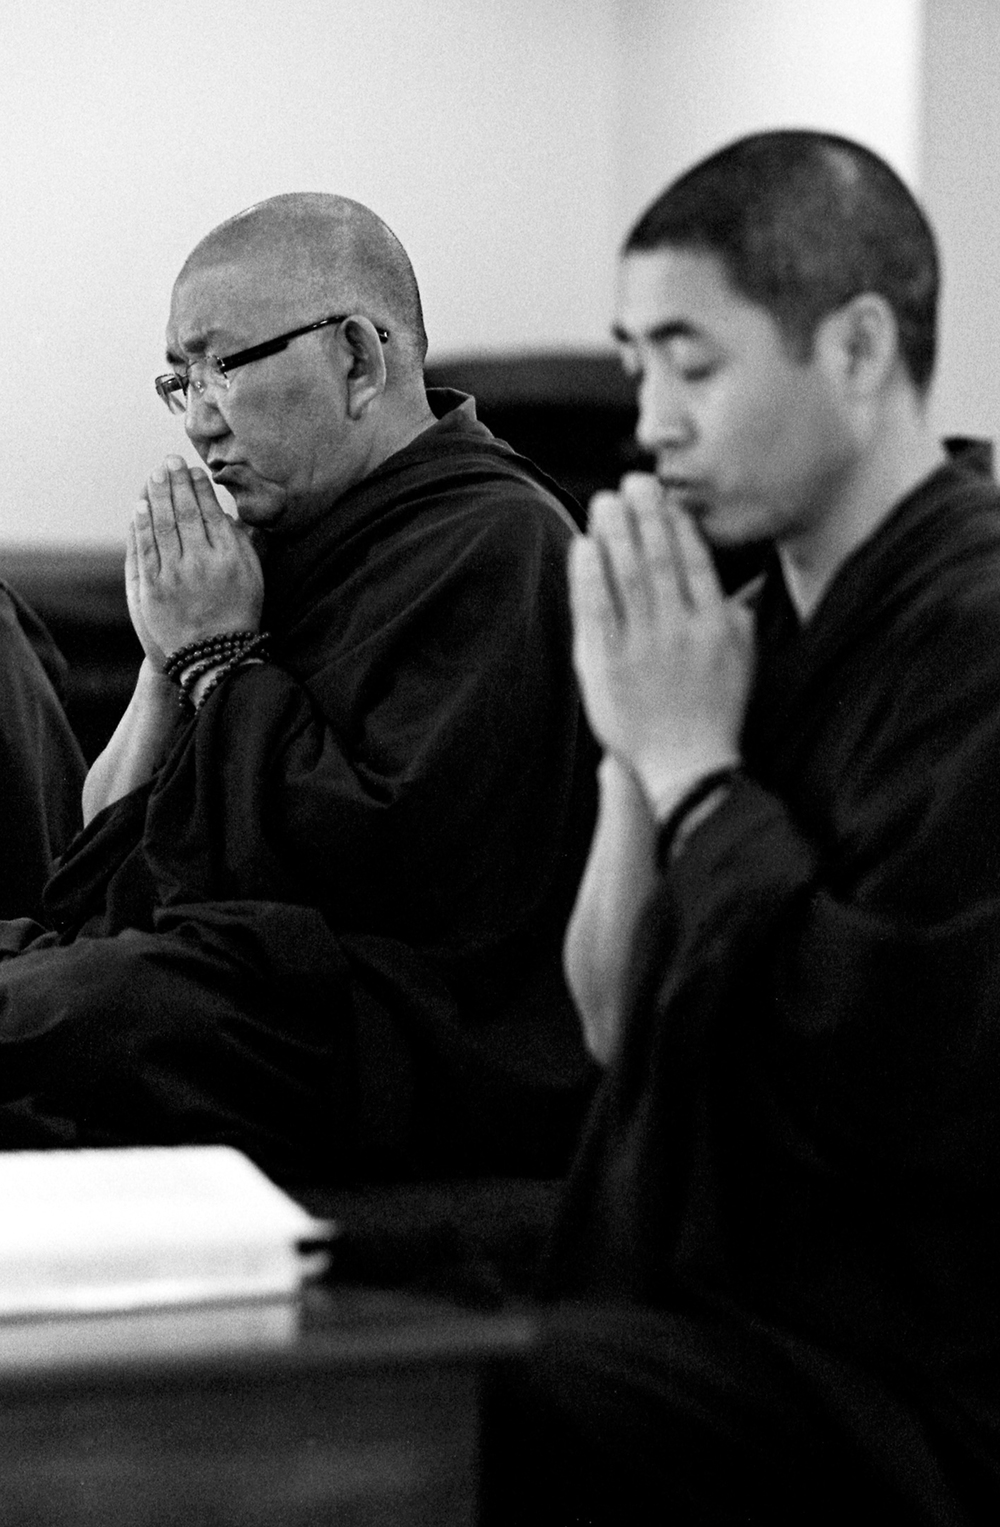 Ven. Arjia Rinpoche (L) and Chunpay Jumai in prayer